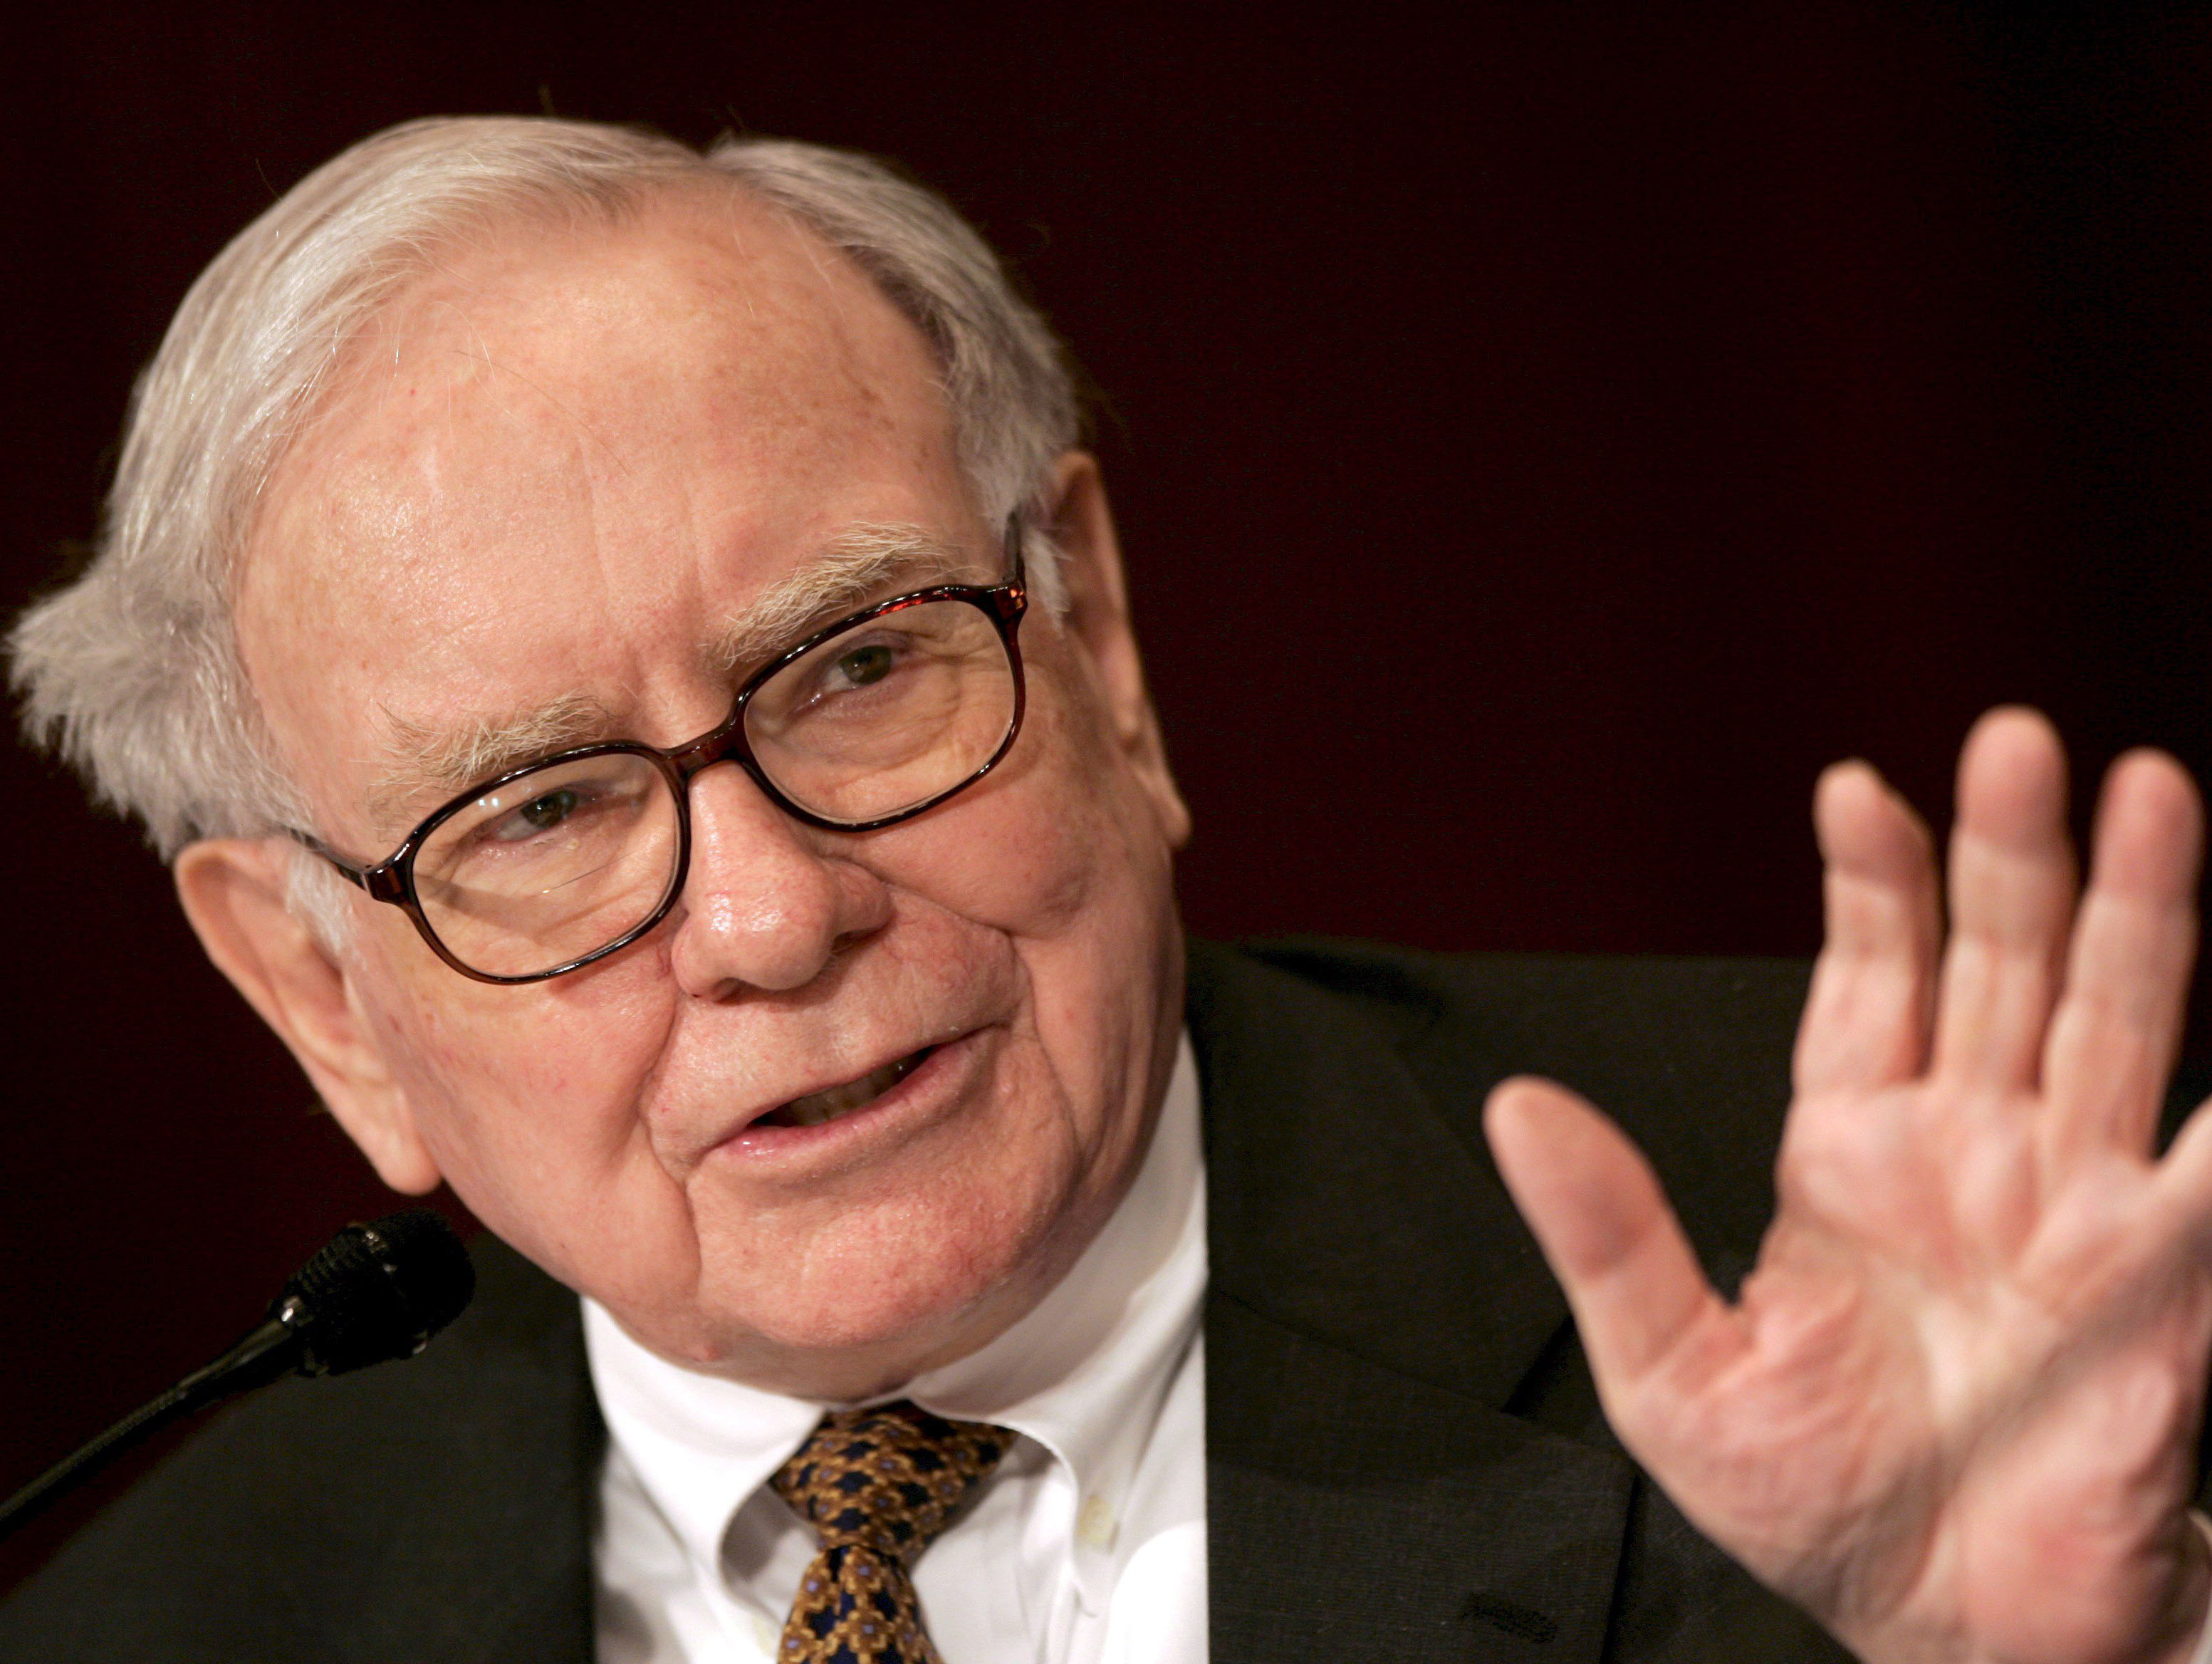 Warren Buffet talking about Strategy and Execution